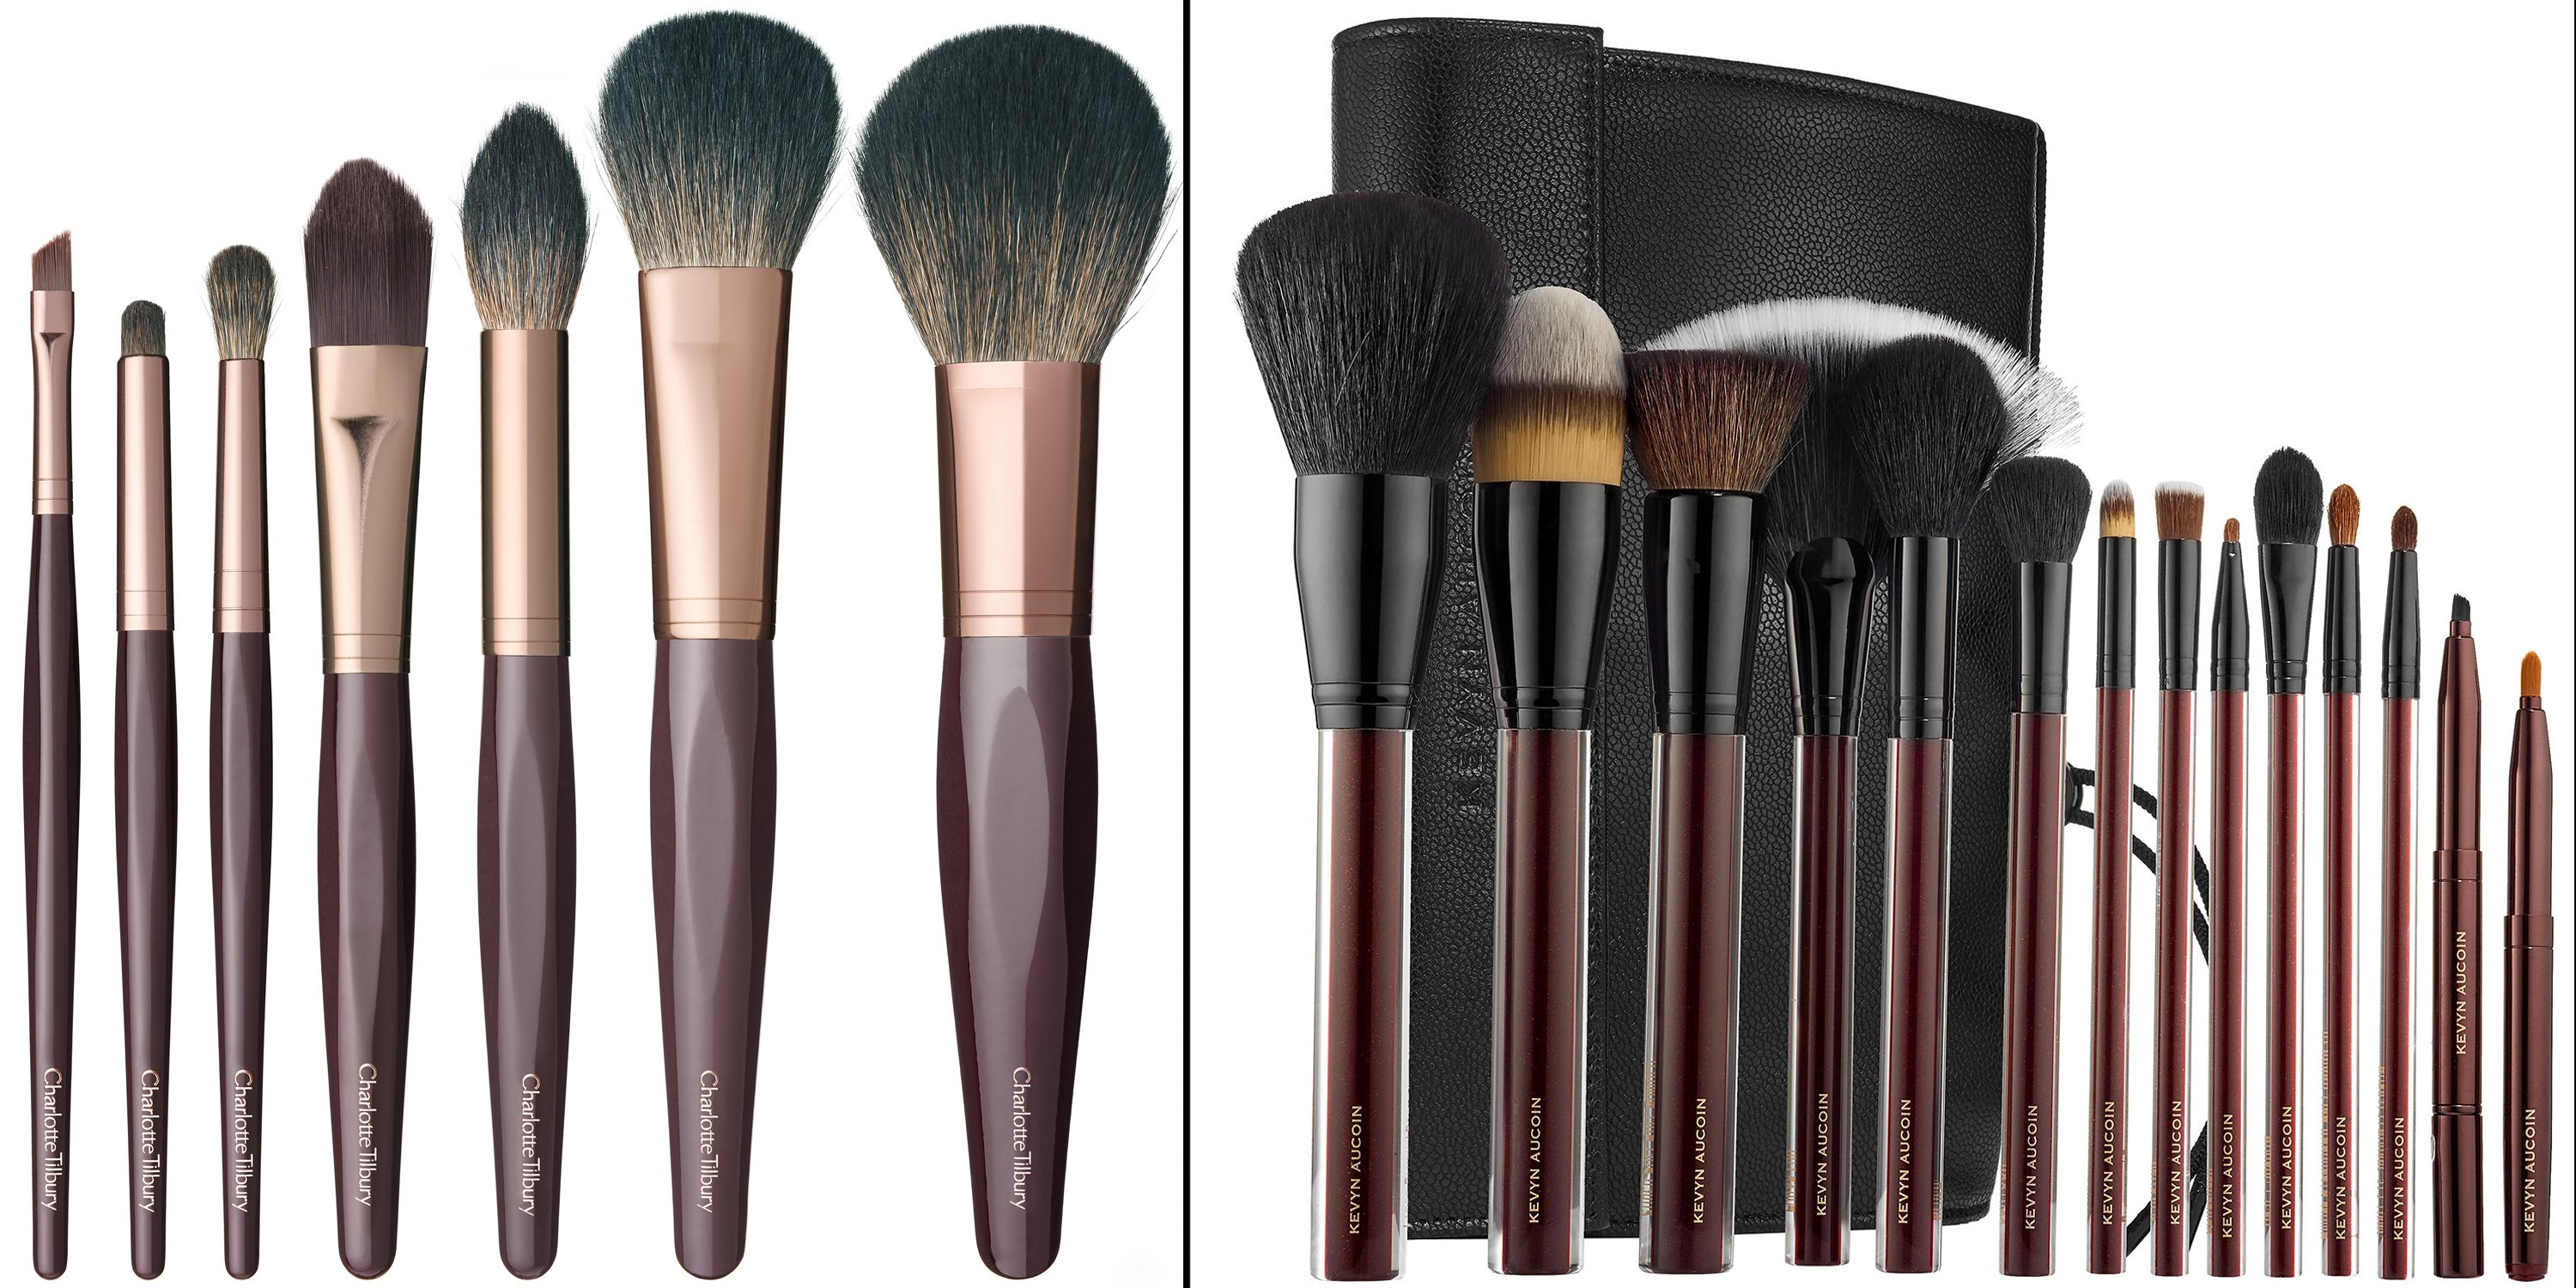 18 Makeup Brush Sets To Try Now